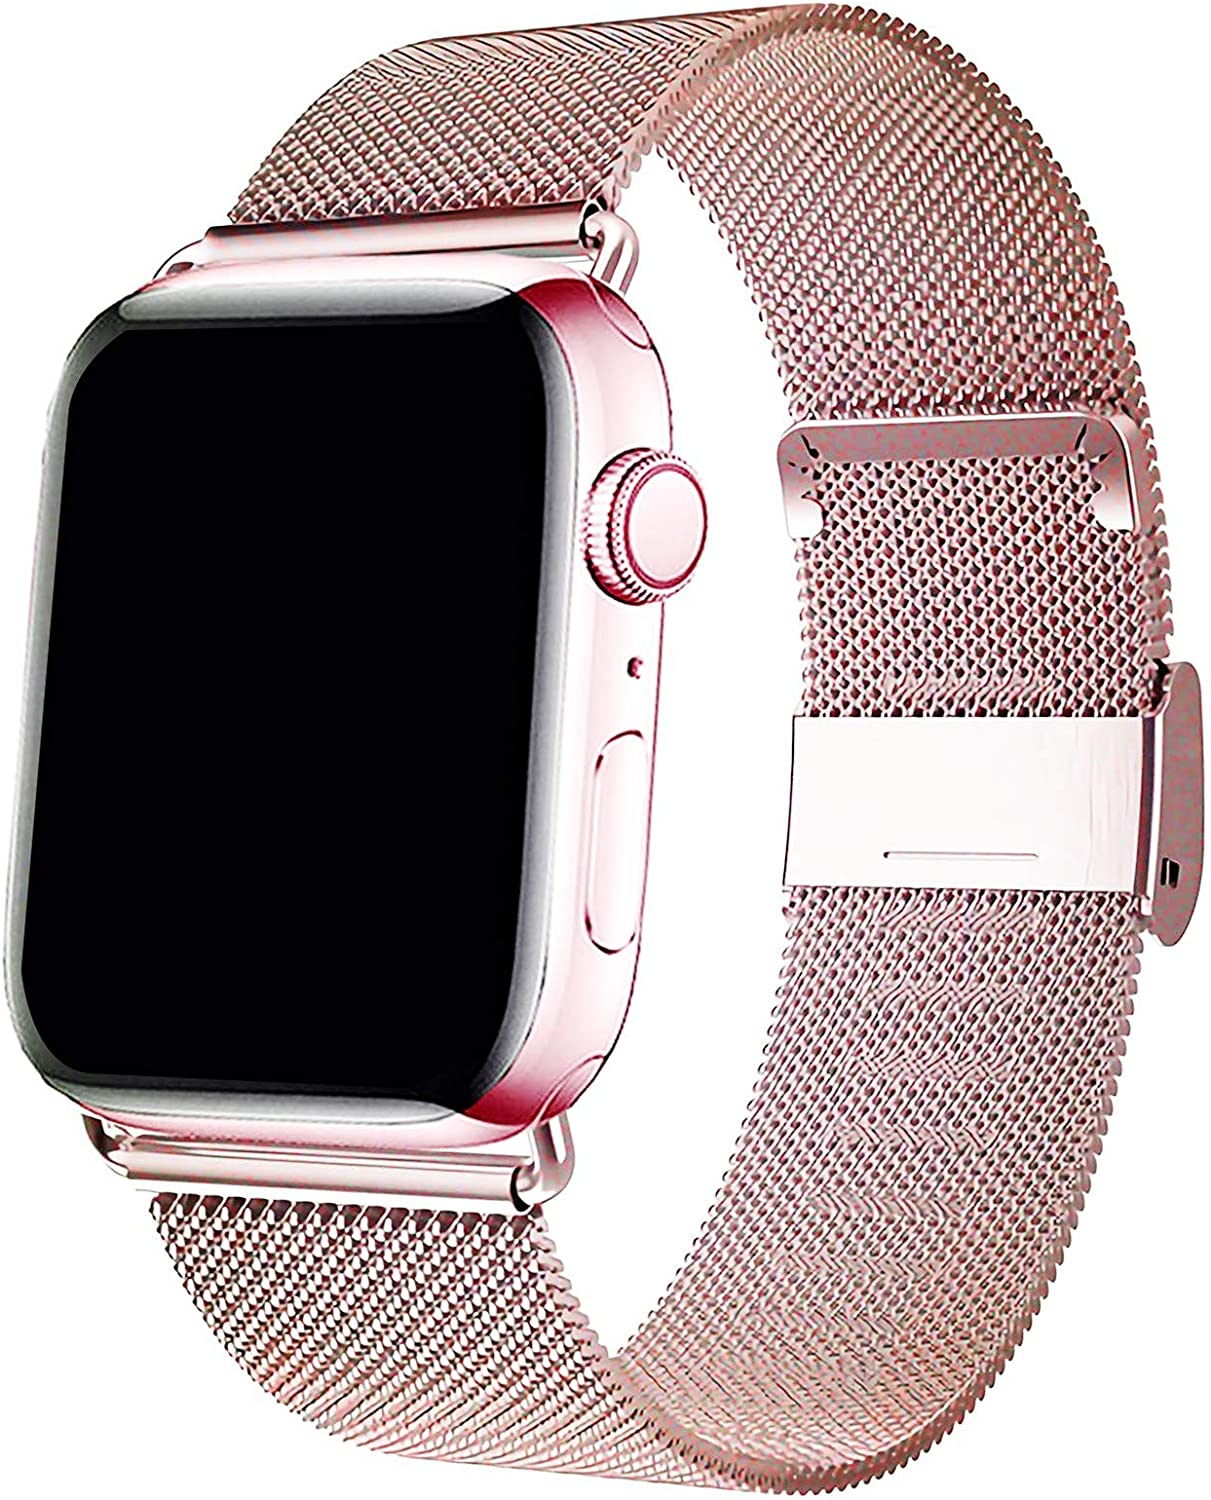 HenMerry Compatible for Apple Watch Band 42mm 44mm 38mm 40mm , Adjustable Stainless Steel Mesh Wristband Sport Loop for iWatch Series 1 2 3 4 5 (RoseGold, 42mm/44mm)